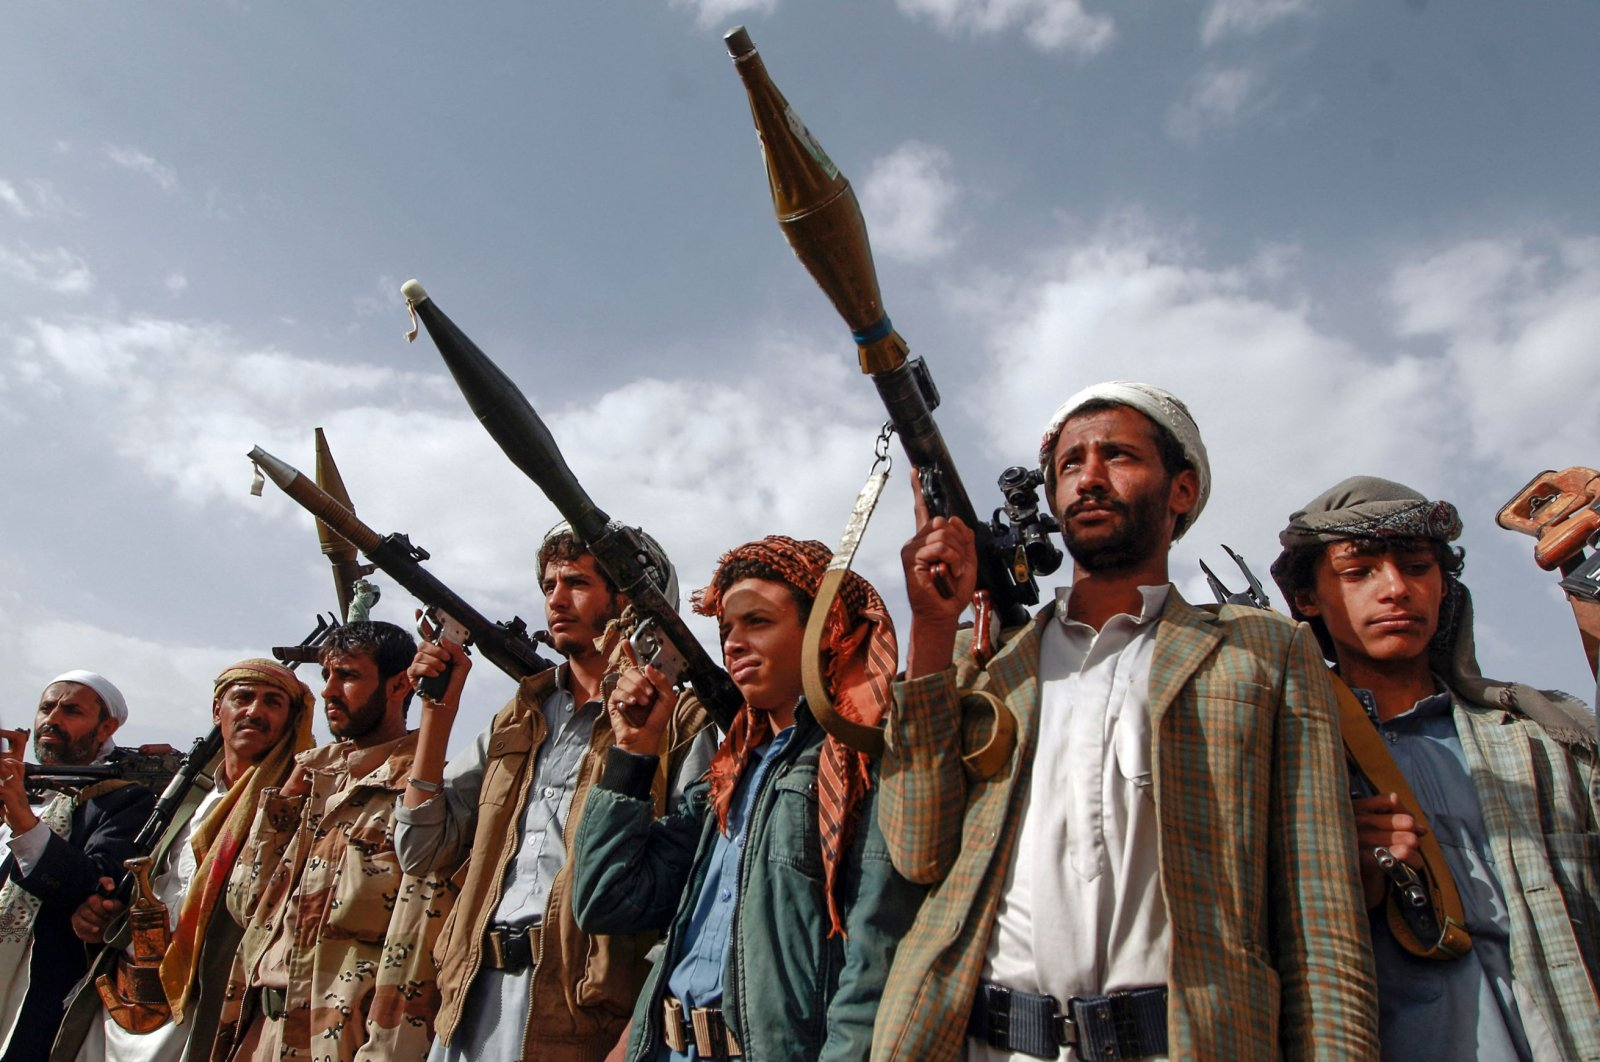 Armed tribesmen, loyal to the Shiite Huthi rebels, brandish their weapons at a gathering in the capital Sanaa to mobilize more fighters to battlefronts to fight pro-government forces in several Yemeni cities, June 20, 2016. (AFP Photo)